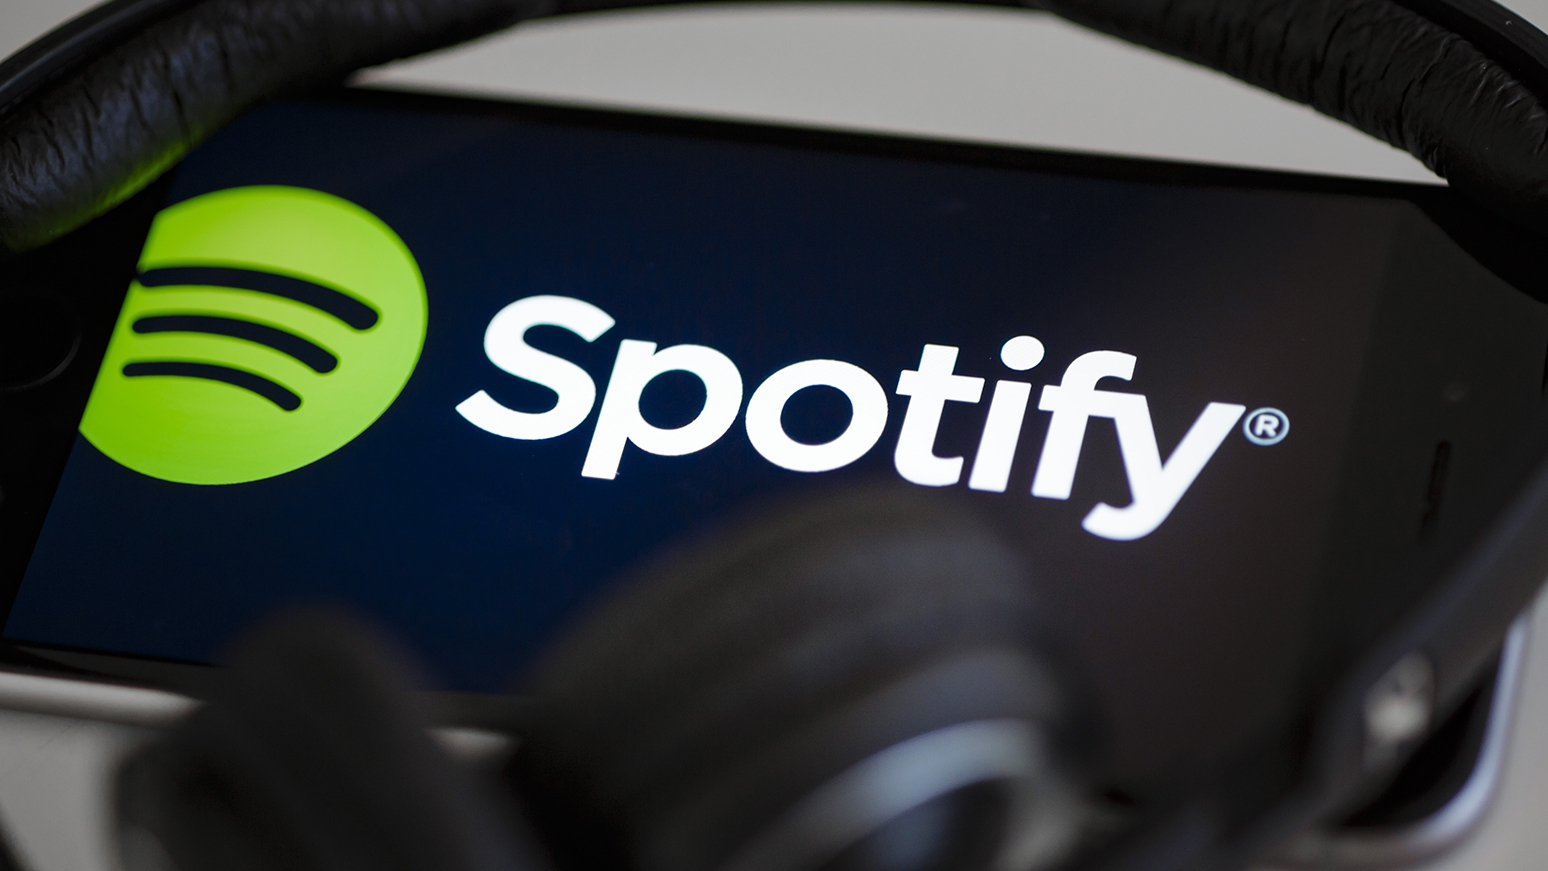 editoriale spotify gratis